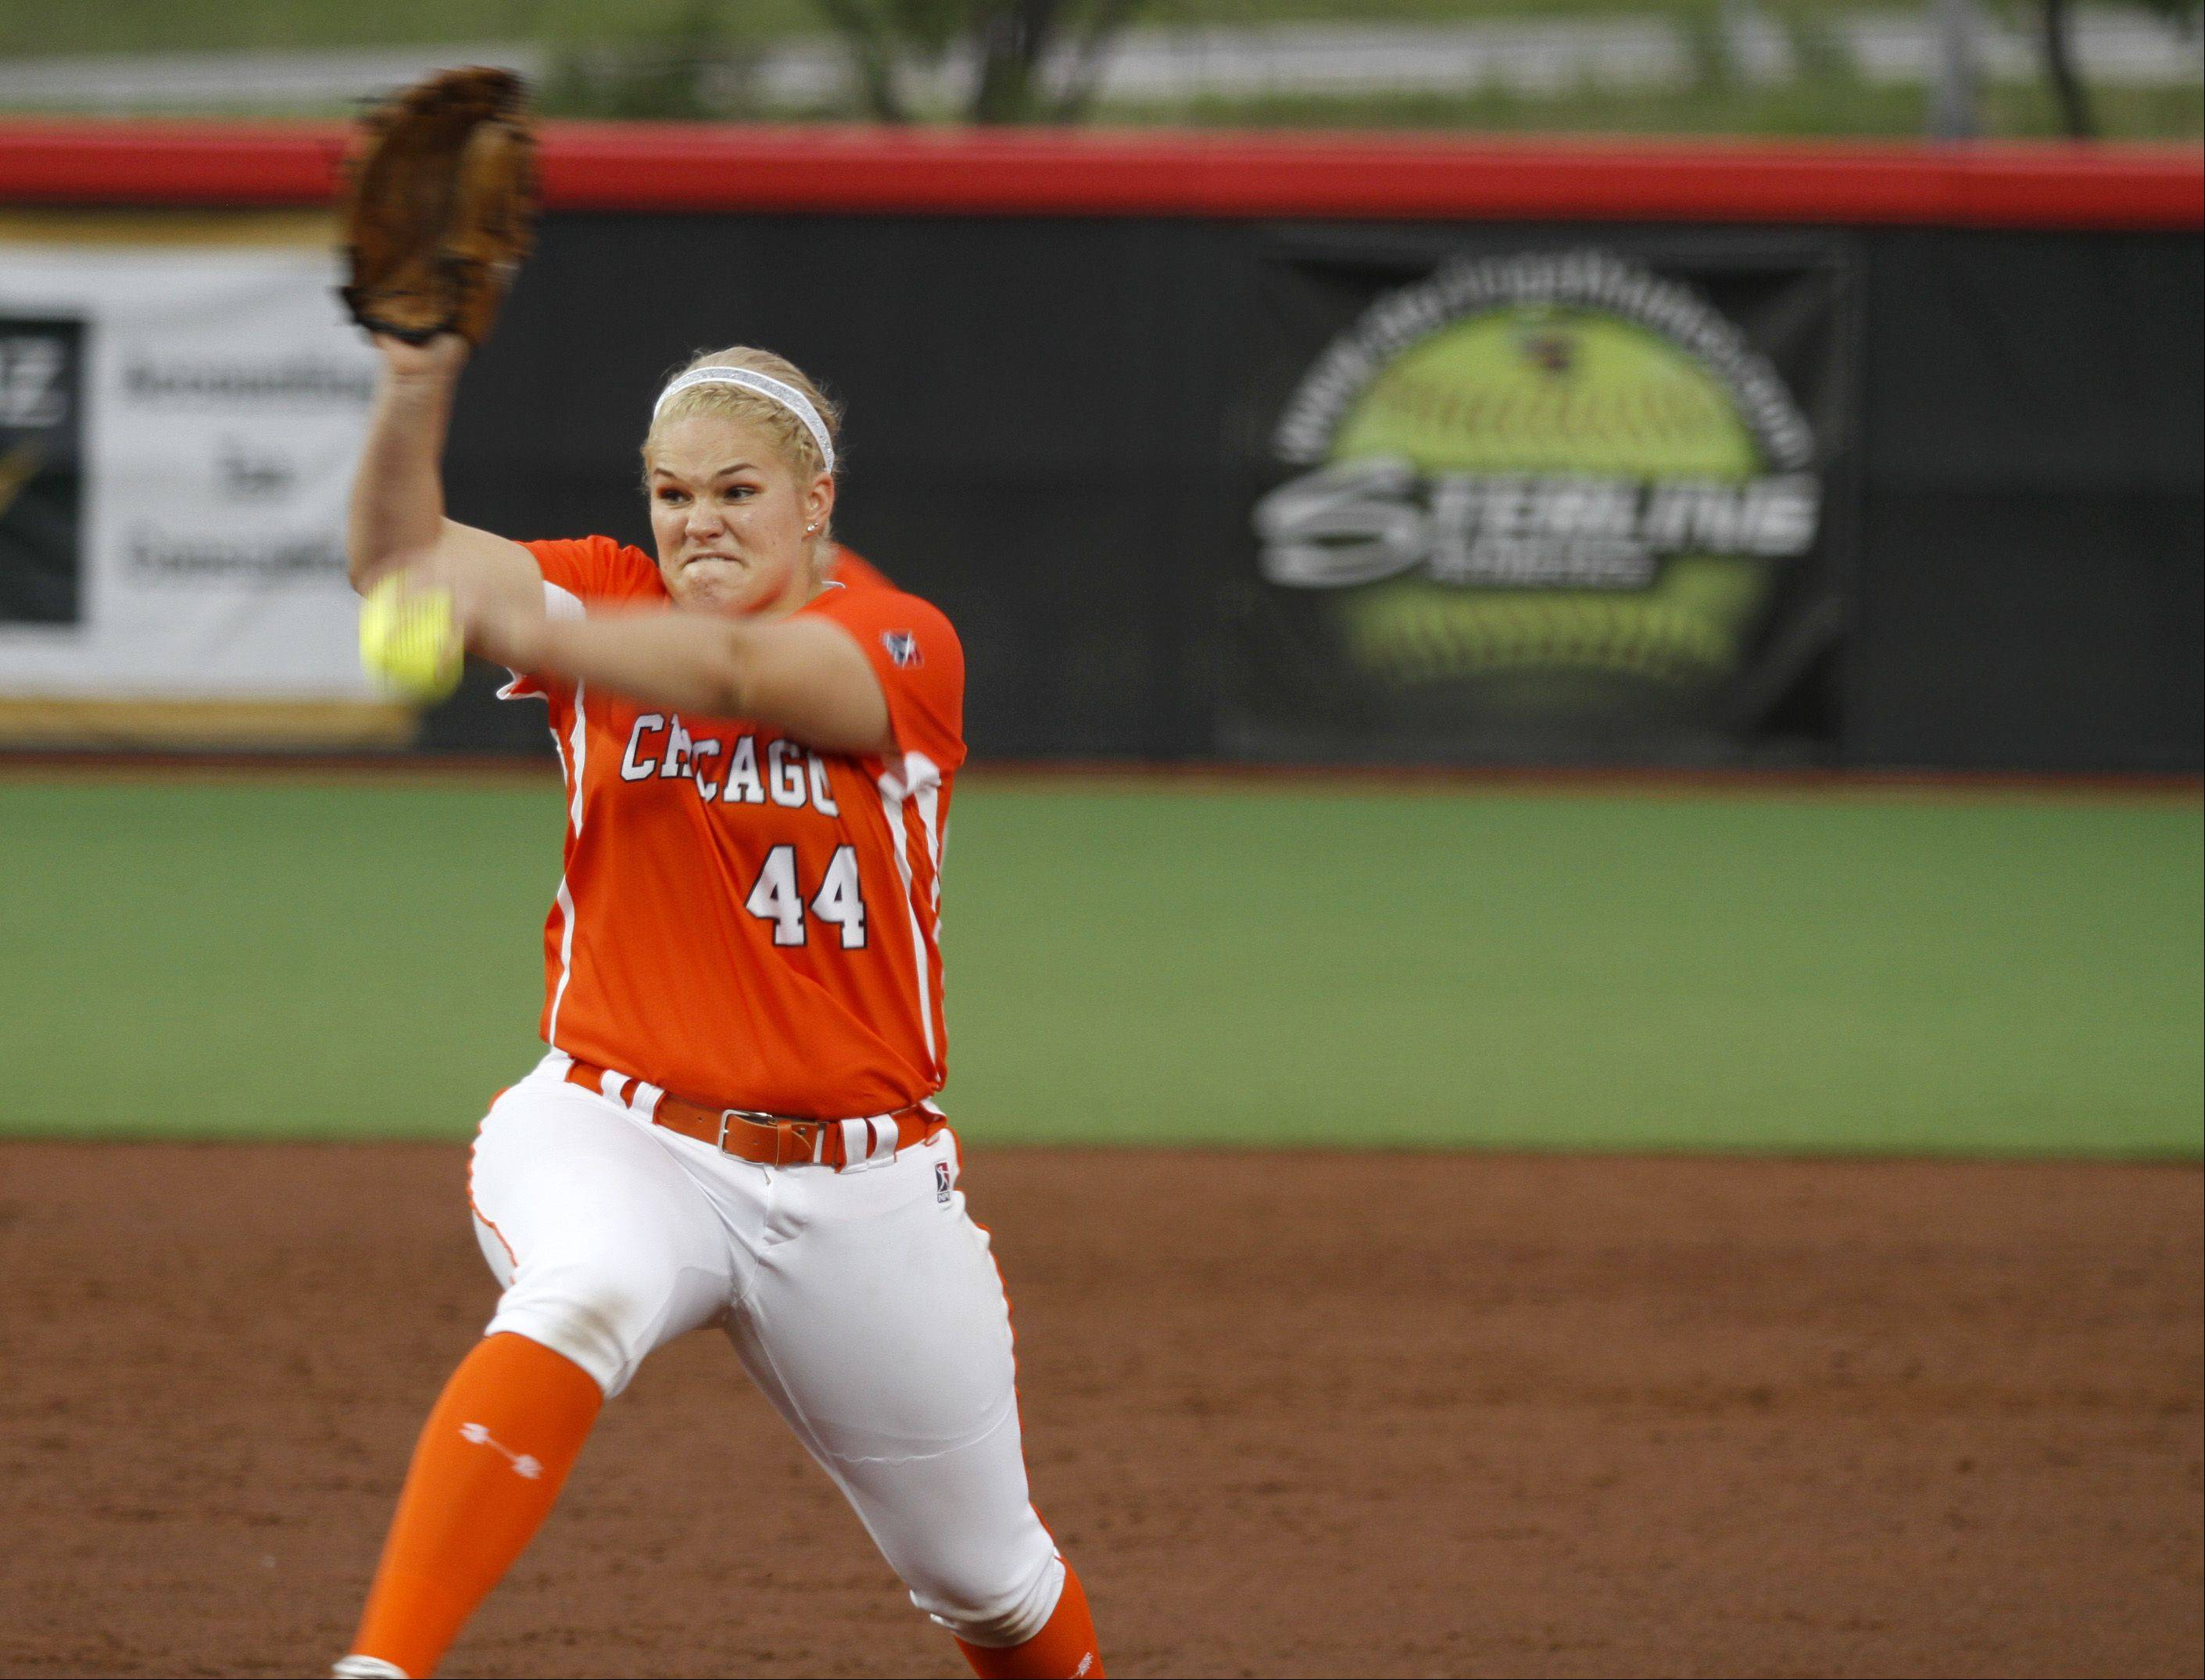 Bandits pitcher Nikki Nemitz works against the NPF Diamonds on Thursday. Nemitz fired a 2-hit shutout.